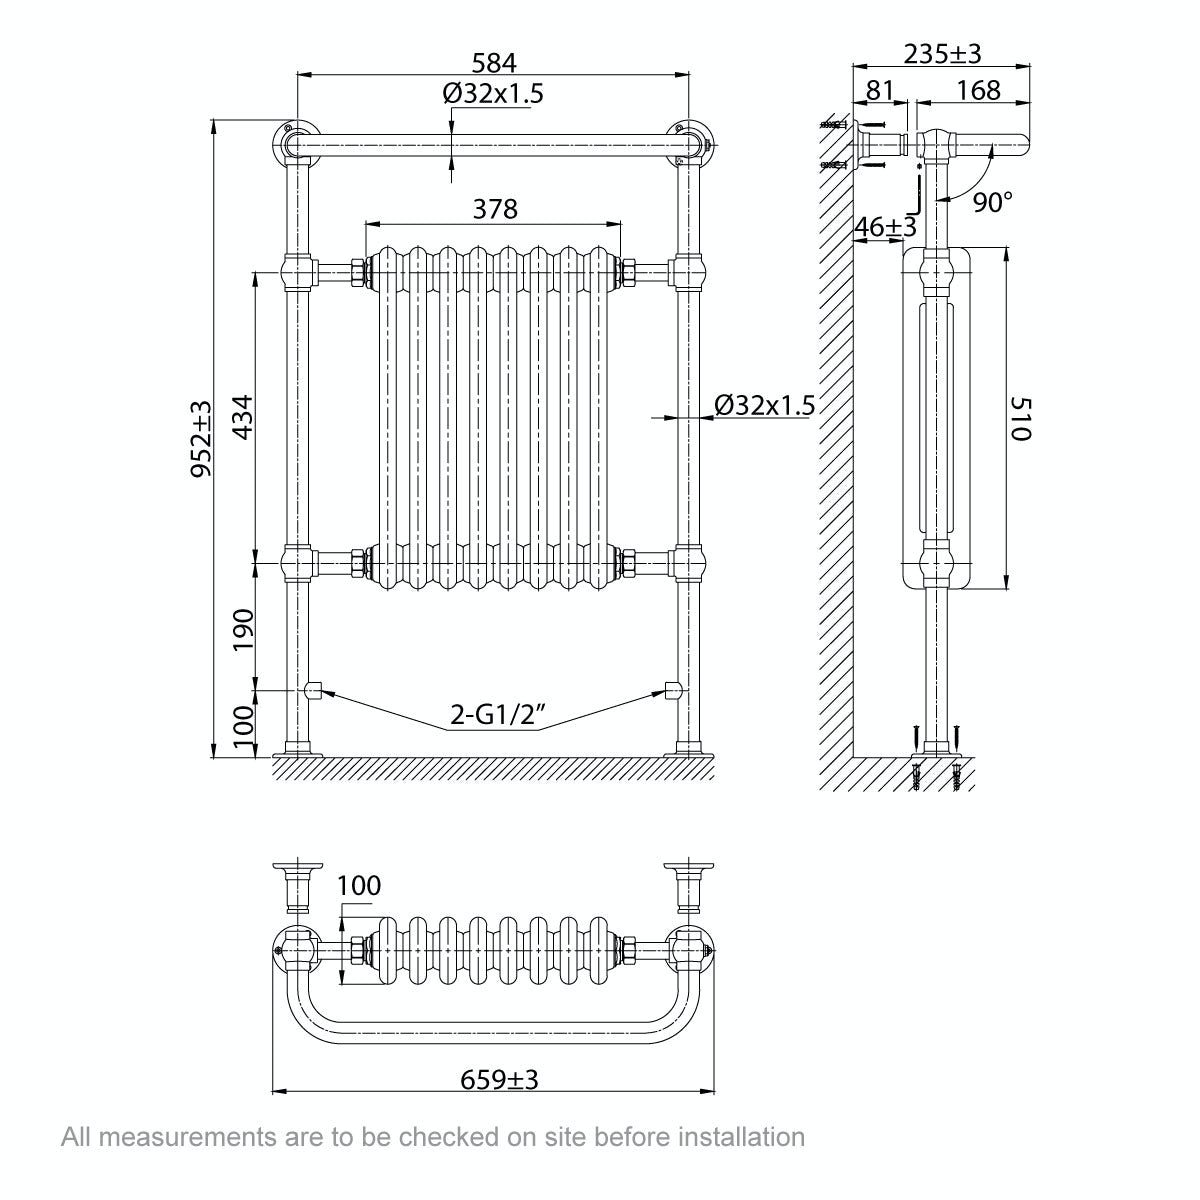 Dimensions for The Bath Co. Dulwich traditional radiator 952 x 659